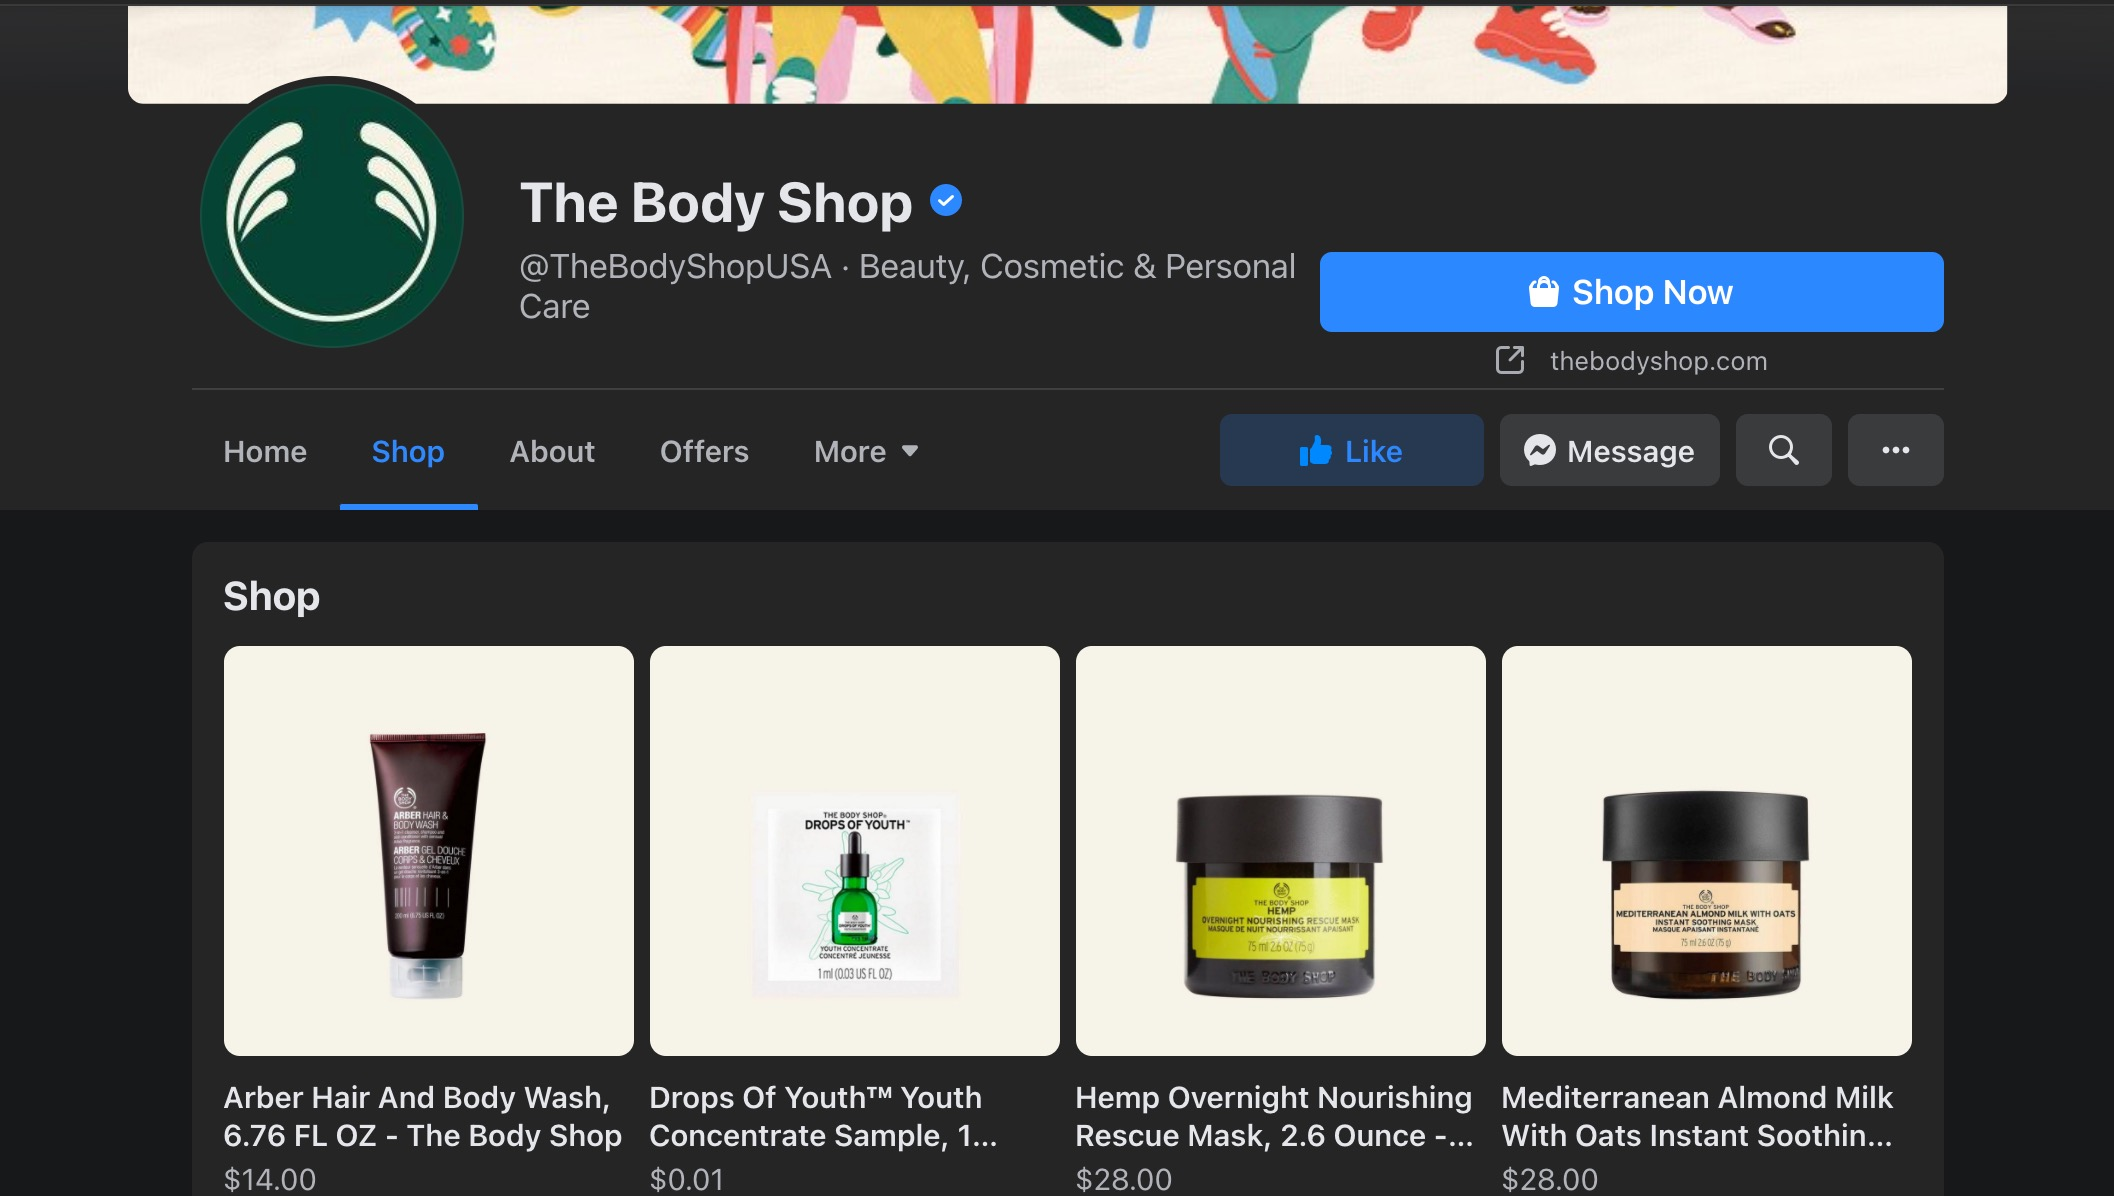 View of The Body Shop's Facebook Shop